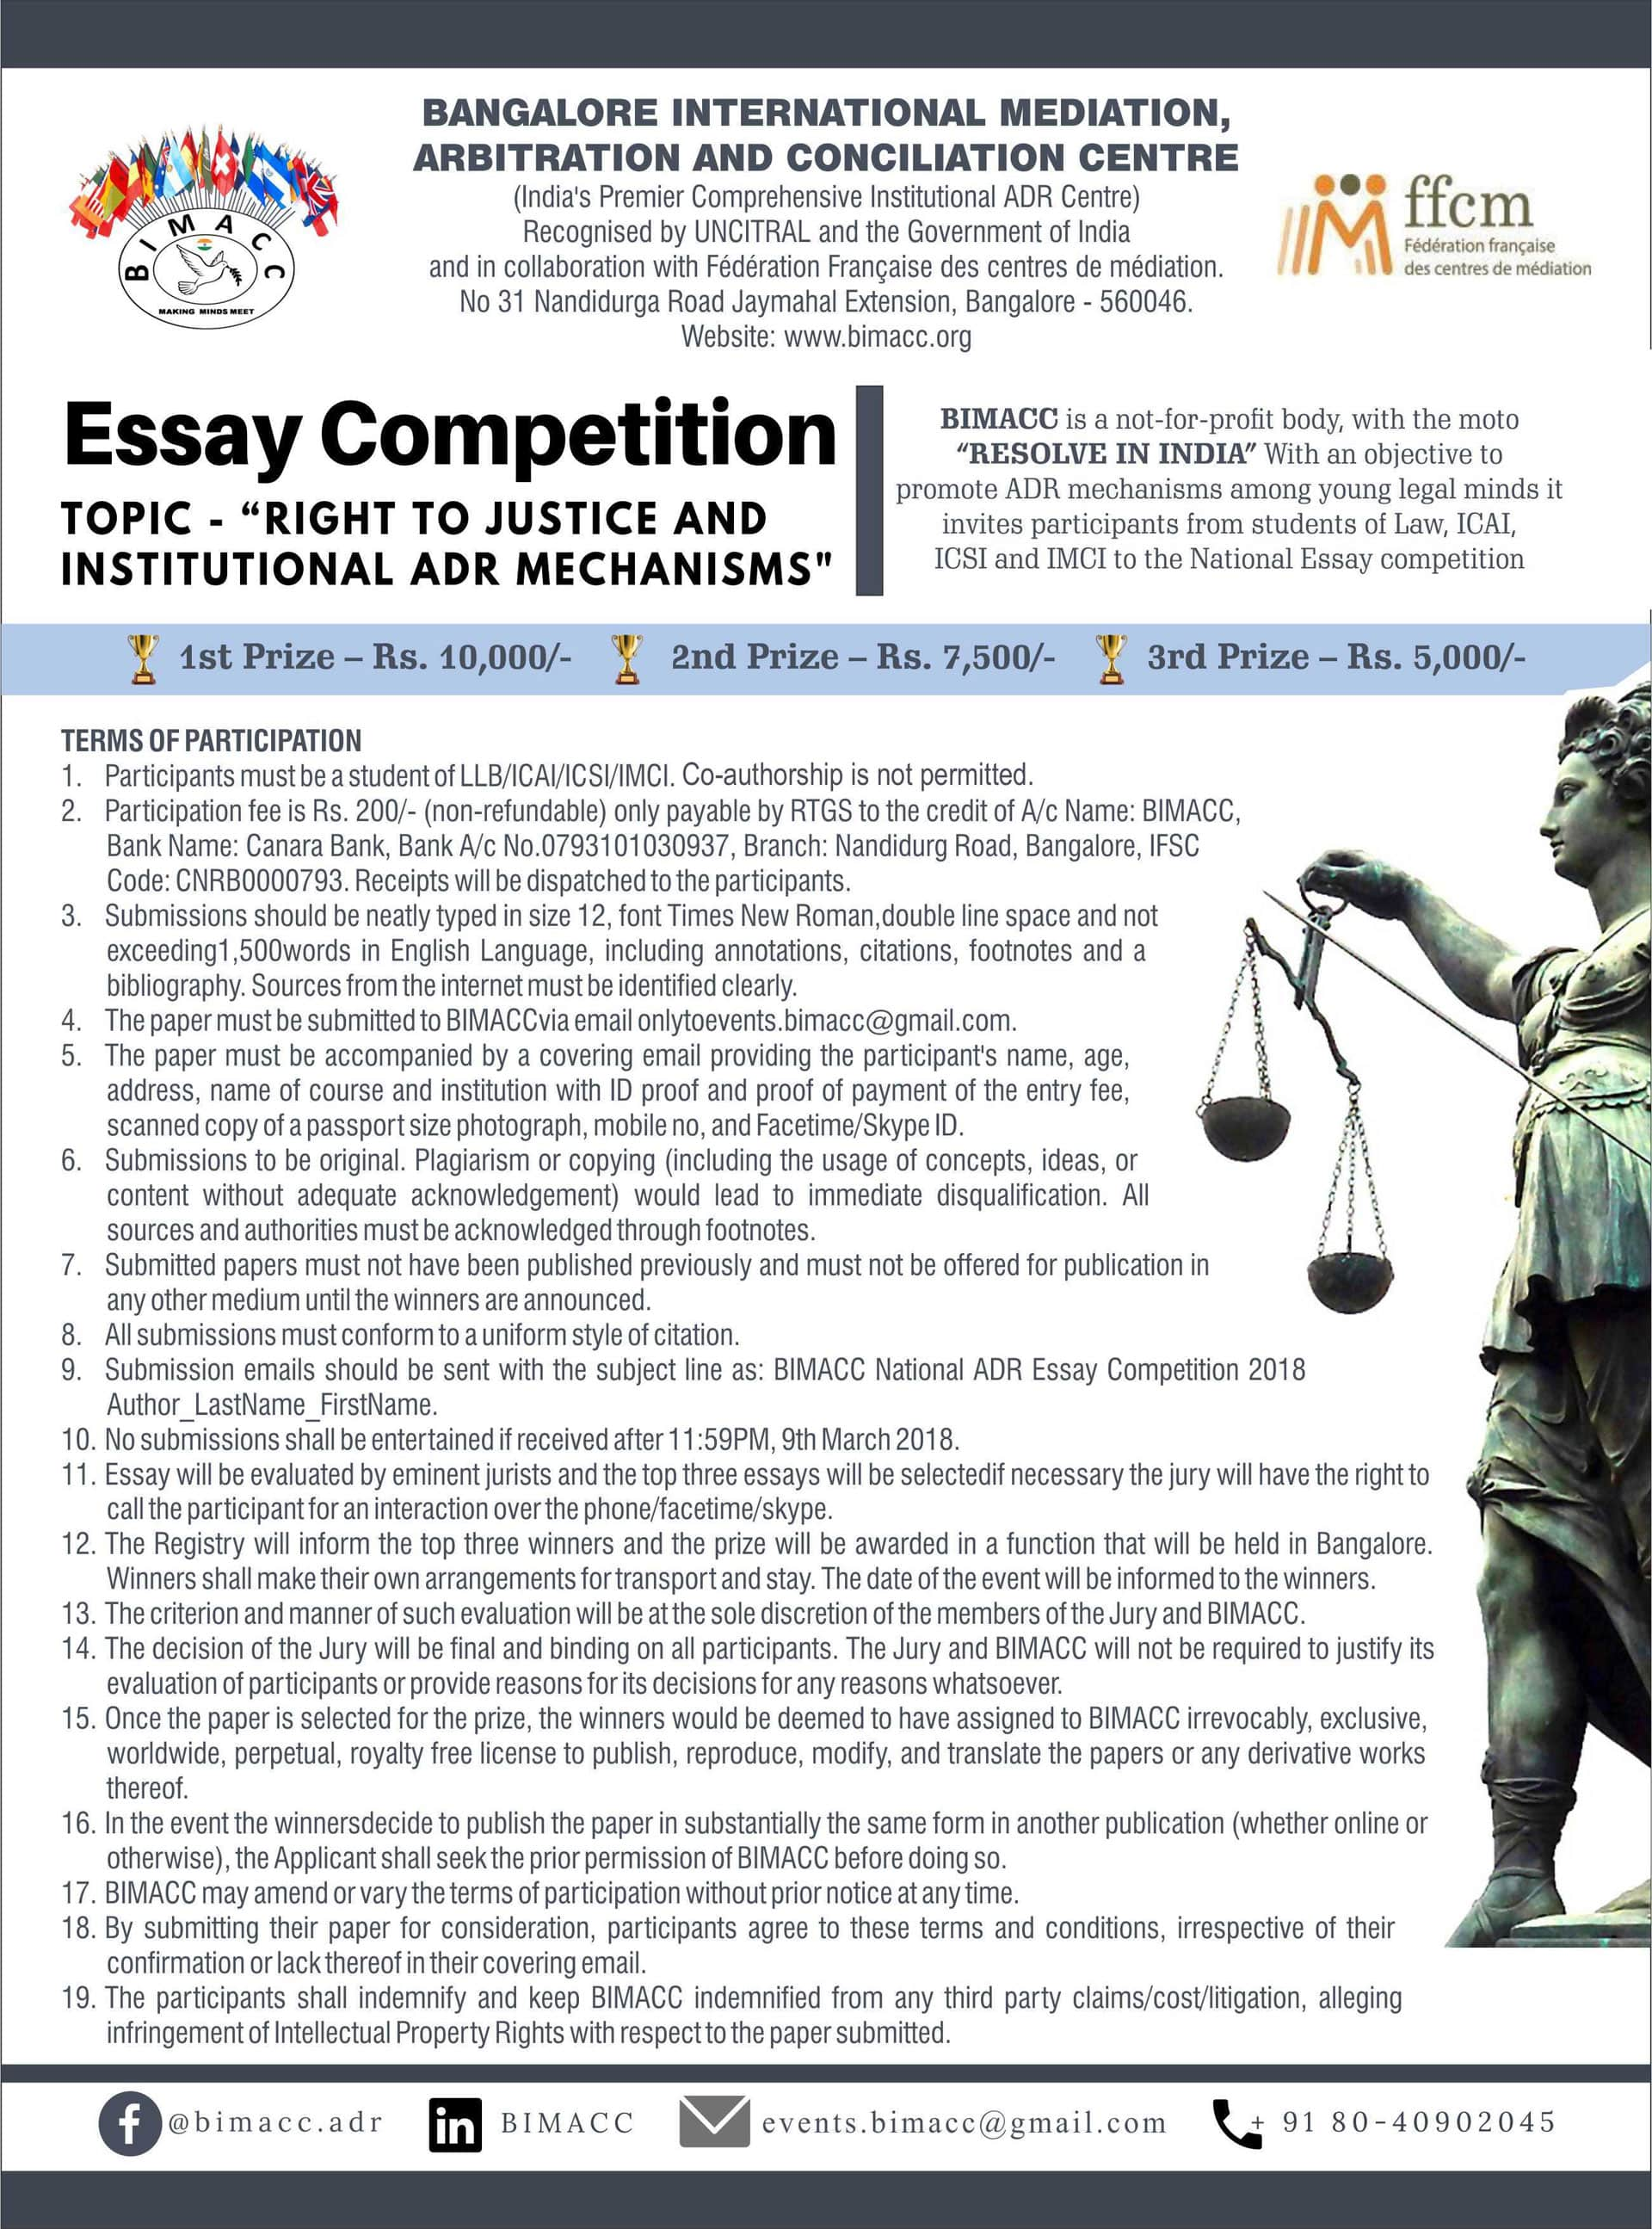 Arbitration And Conciliation Centre BIMACC Competition Name Essay Deadline March 9 2018